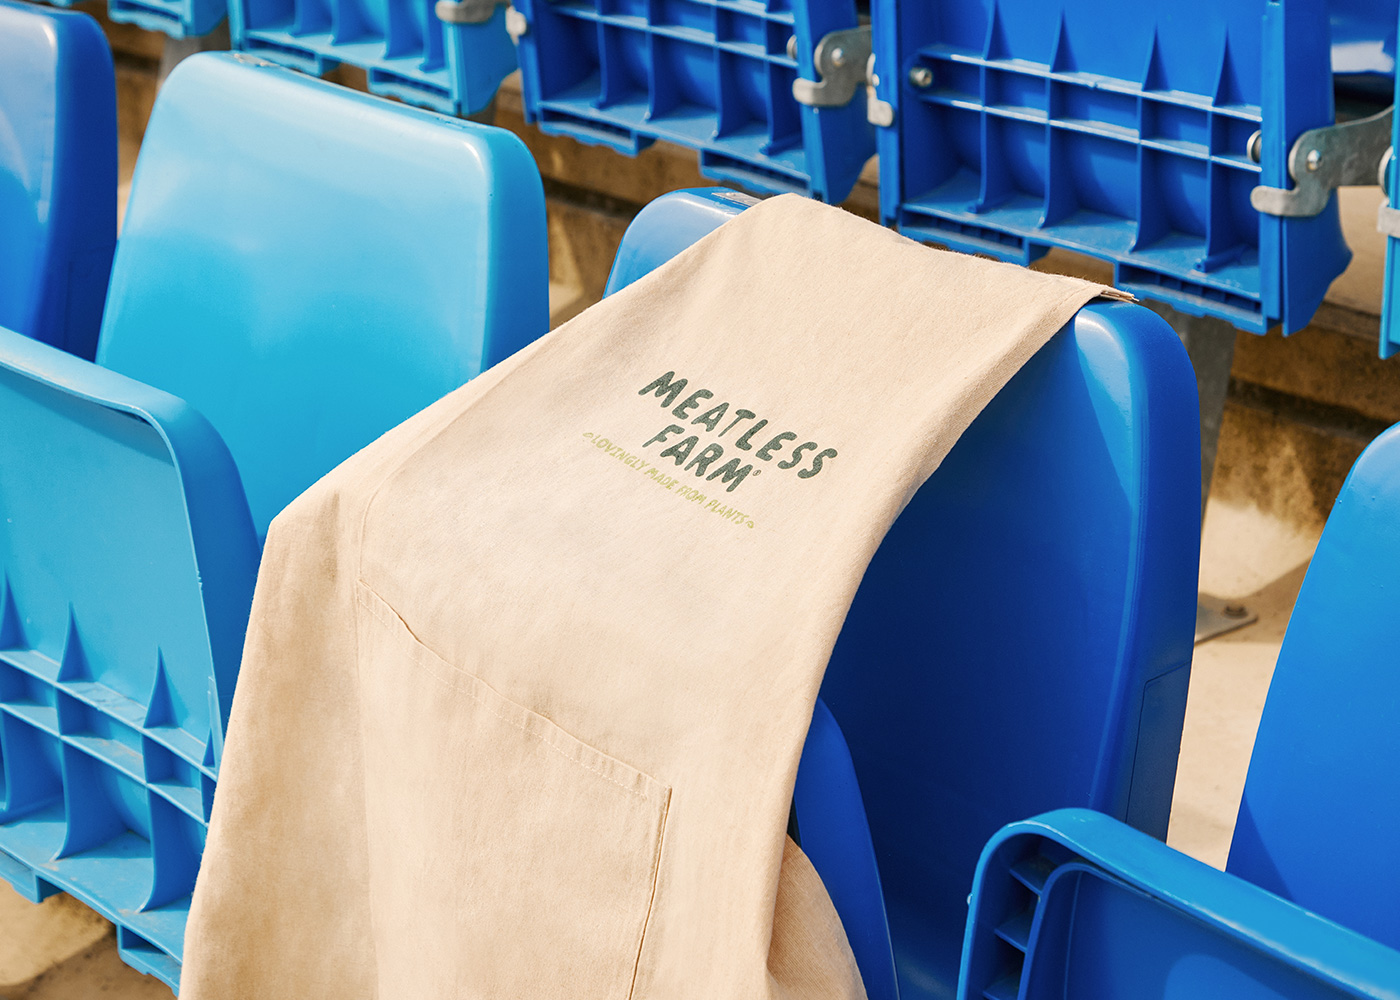 Meatless Farm shirt on Real Madrid stadium seats